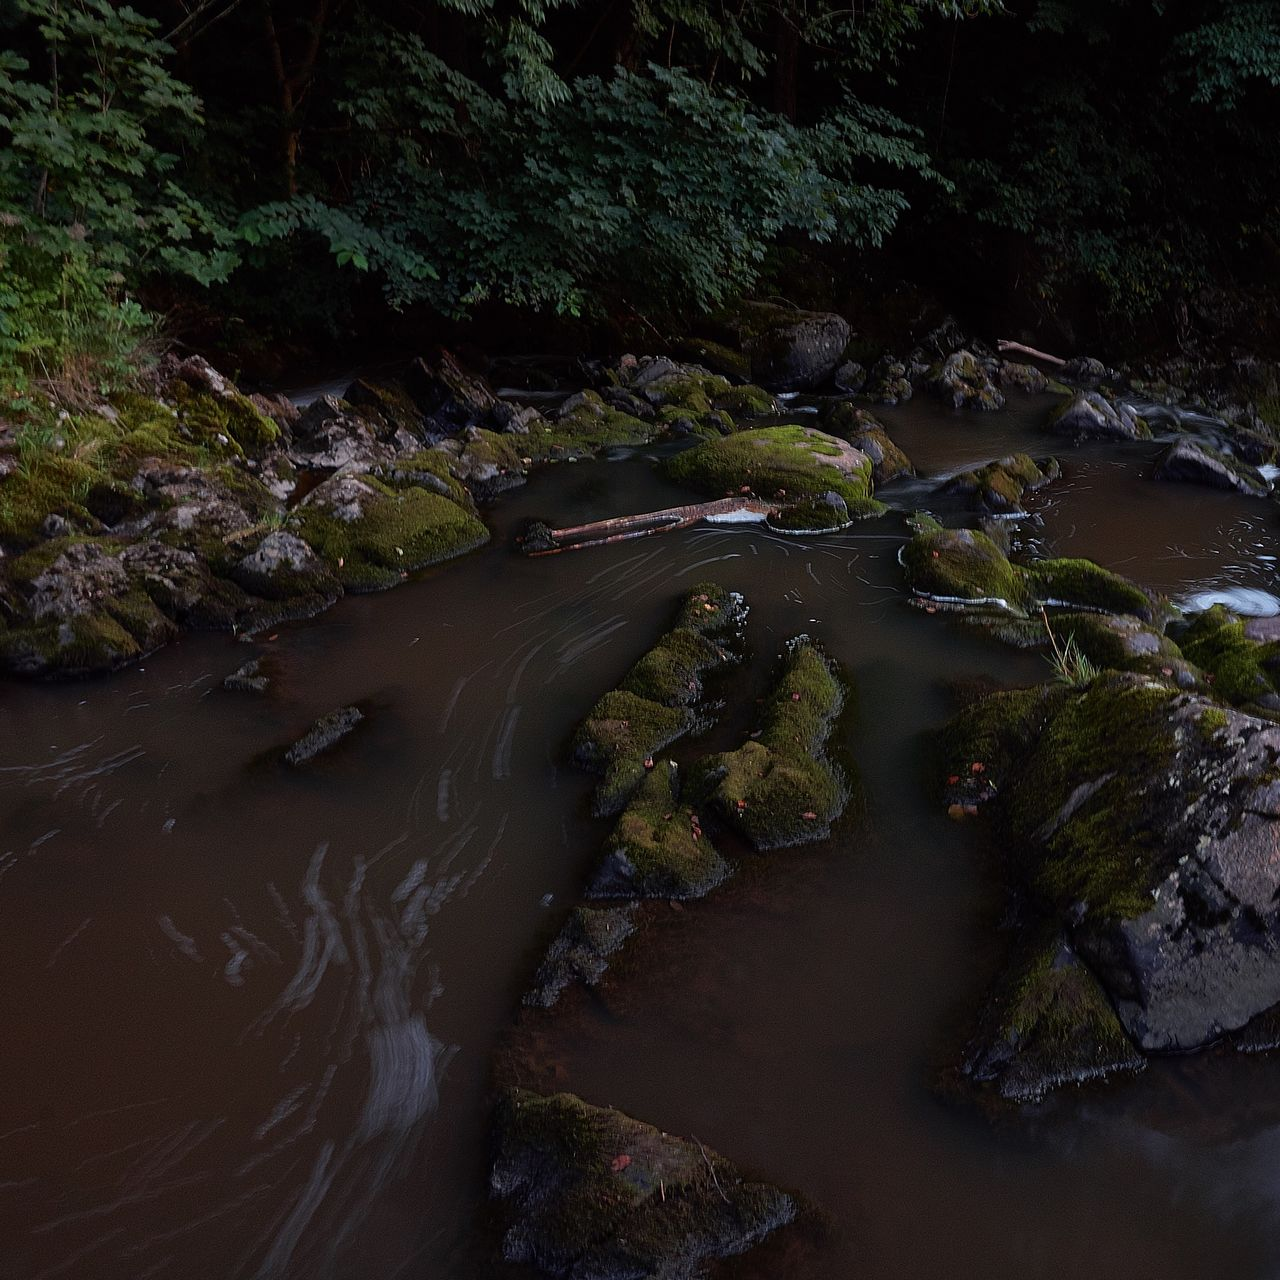 water, river, rock - object, nature, waterfall, stream - flowing water, motion, no people, outdoors, long exposure, tranquility, beauty in nature, riverbank, forest, scenics, plant, day, tree